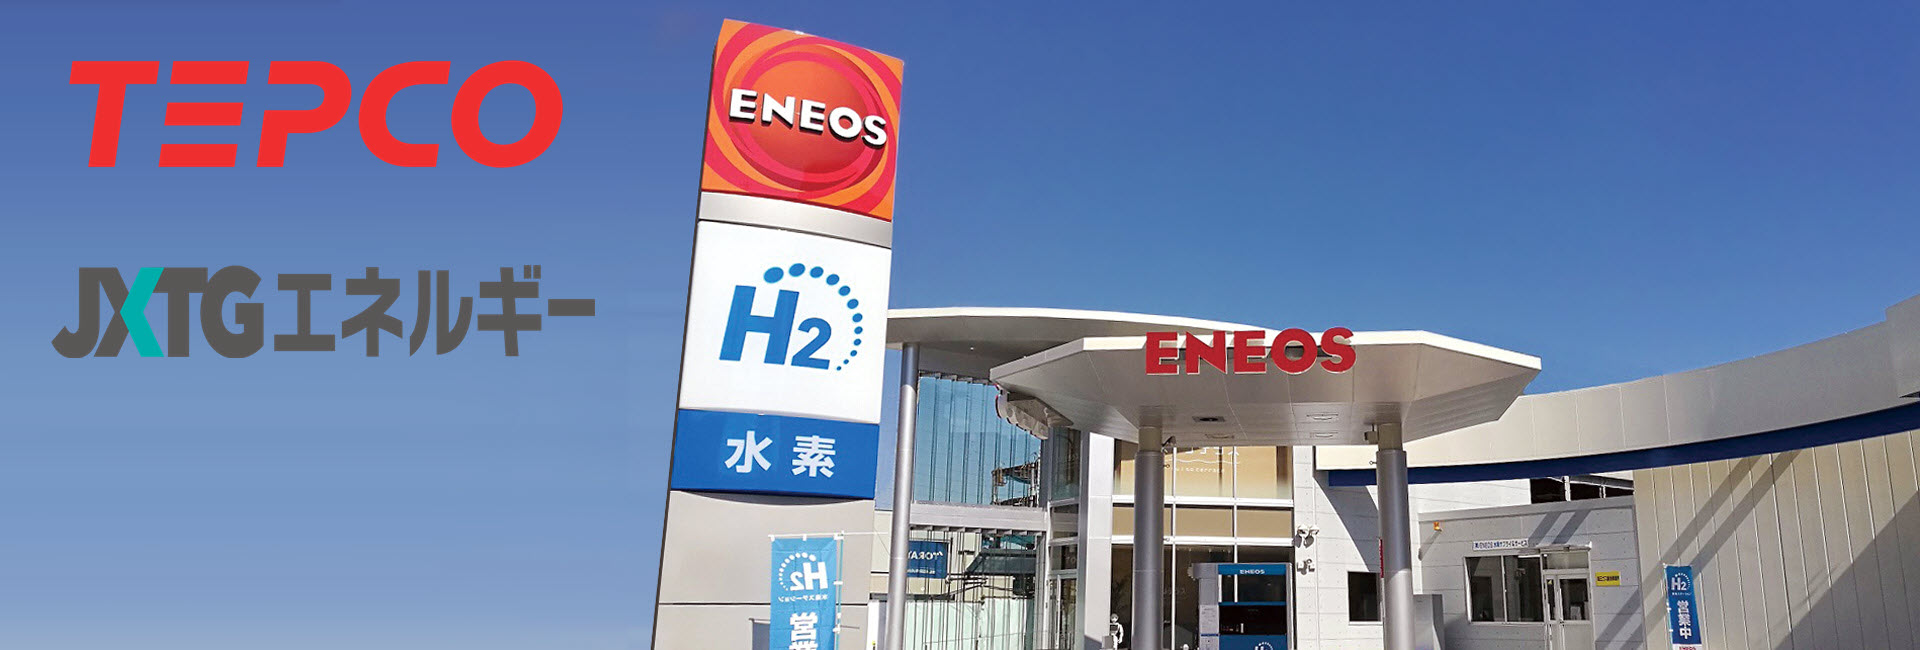 Tepco and Jxtg Join Forces for Hydrogen Stations